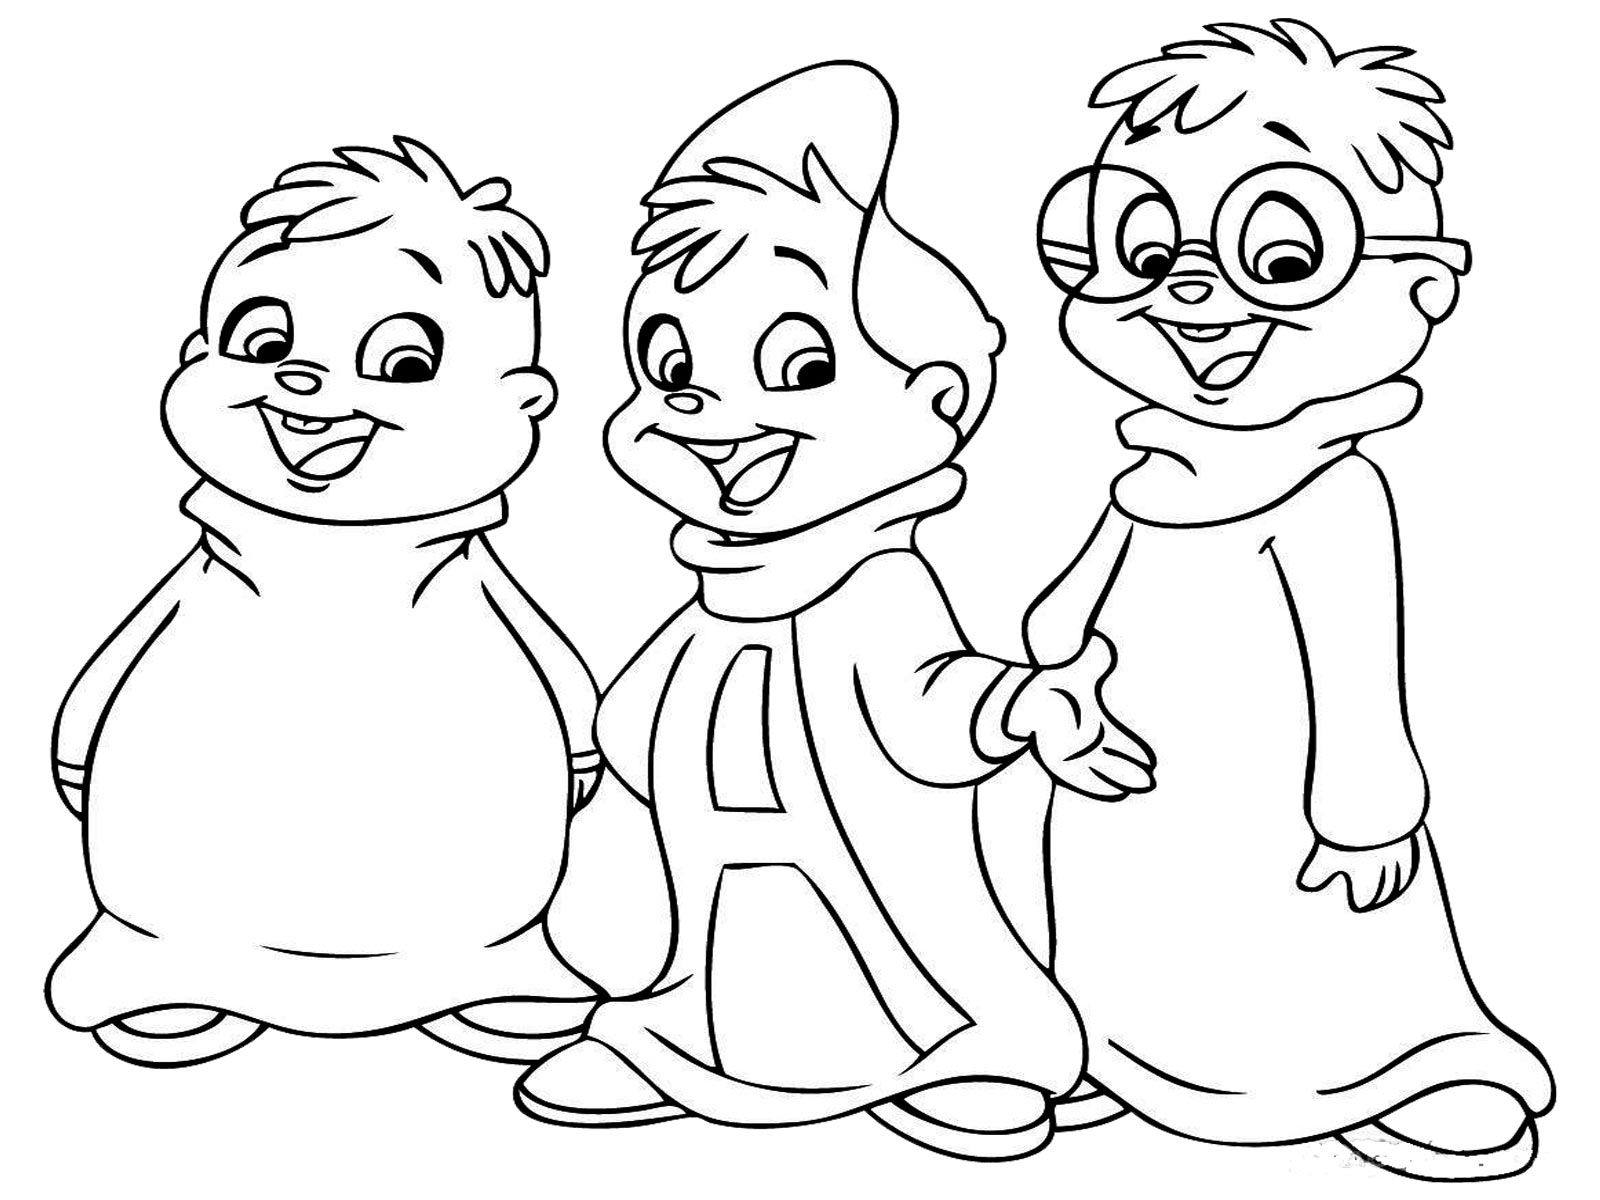 the kids coloring pages - photo #1